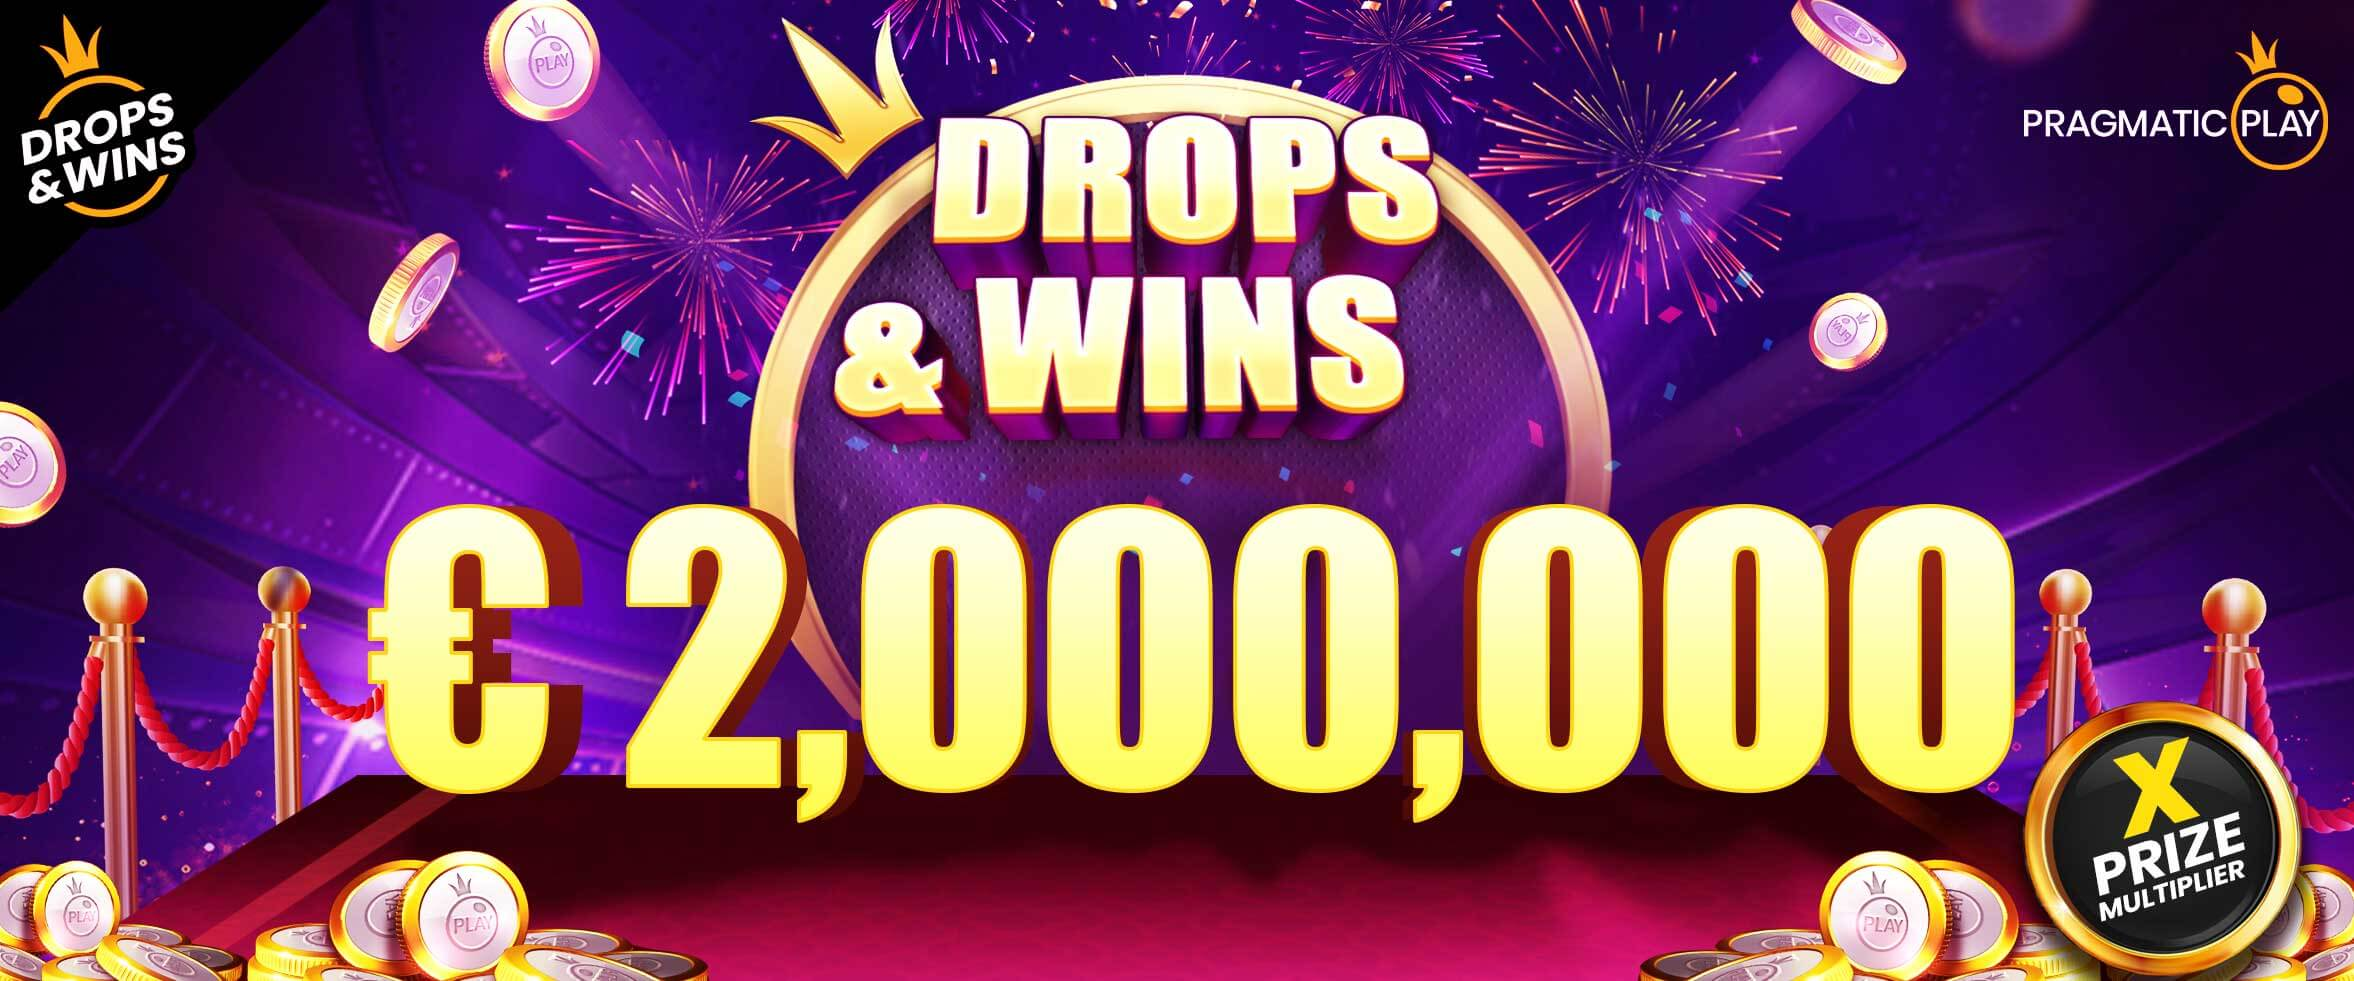 $2,000,000 Promotion Runs now Through February